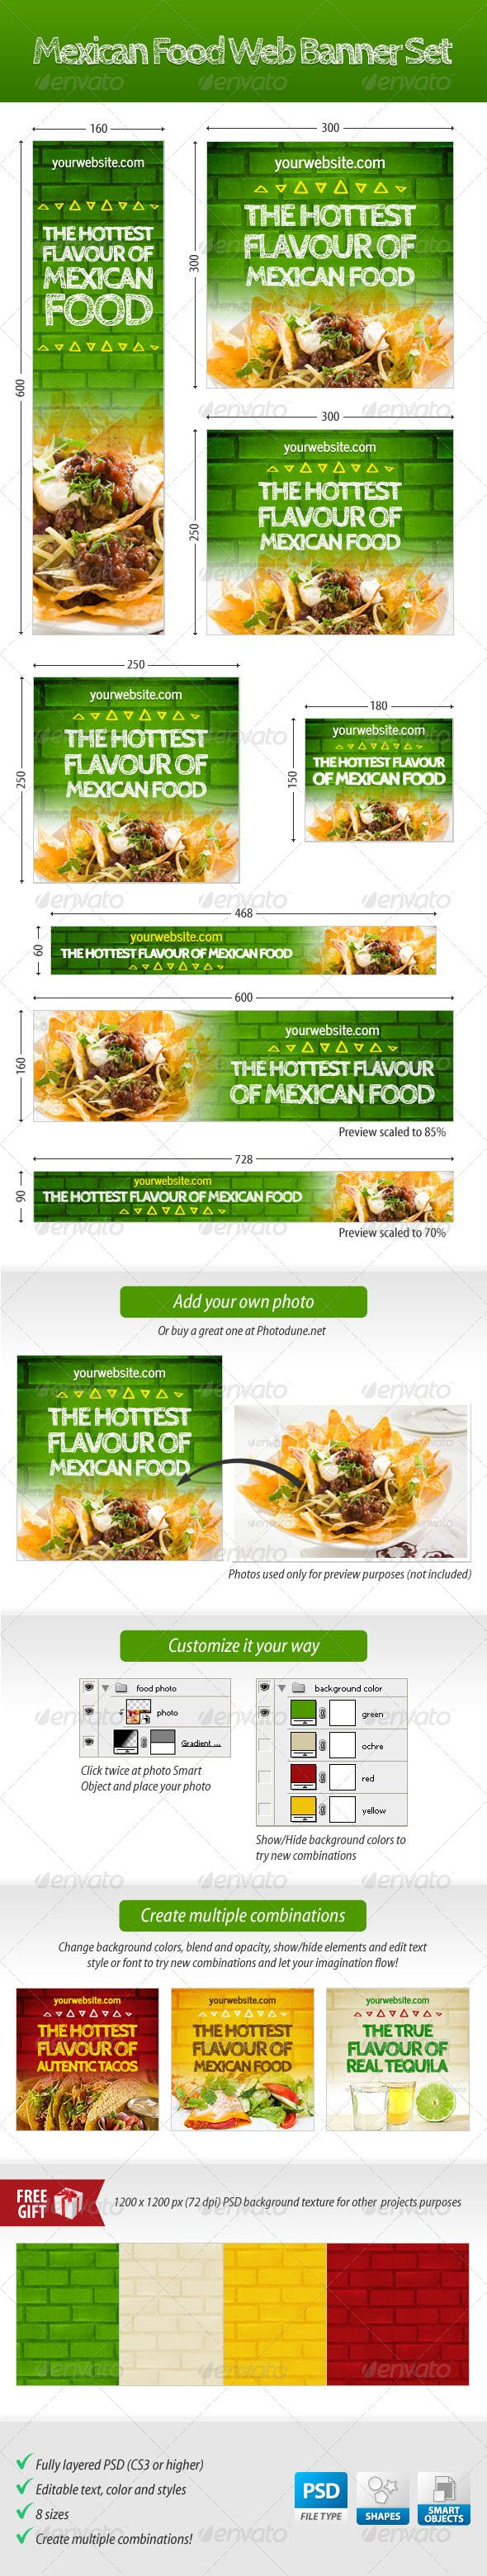 Mexican Food Web Banner Set - GraphicRiver Item for Sale  | Google Adwords Banners, Static Banners, banner pack, banner set, banners adwords, marketing, advertising, web banners